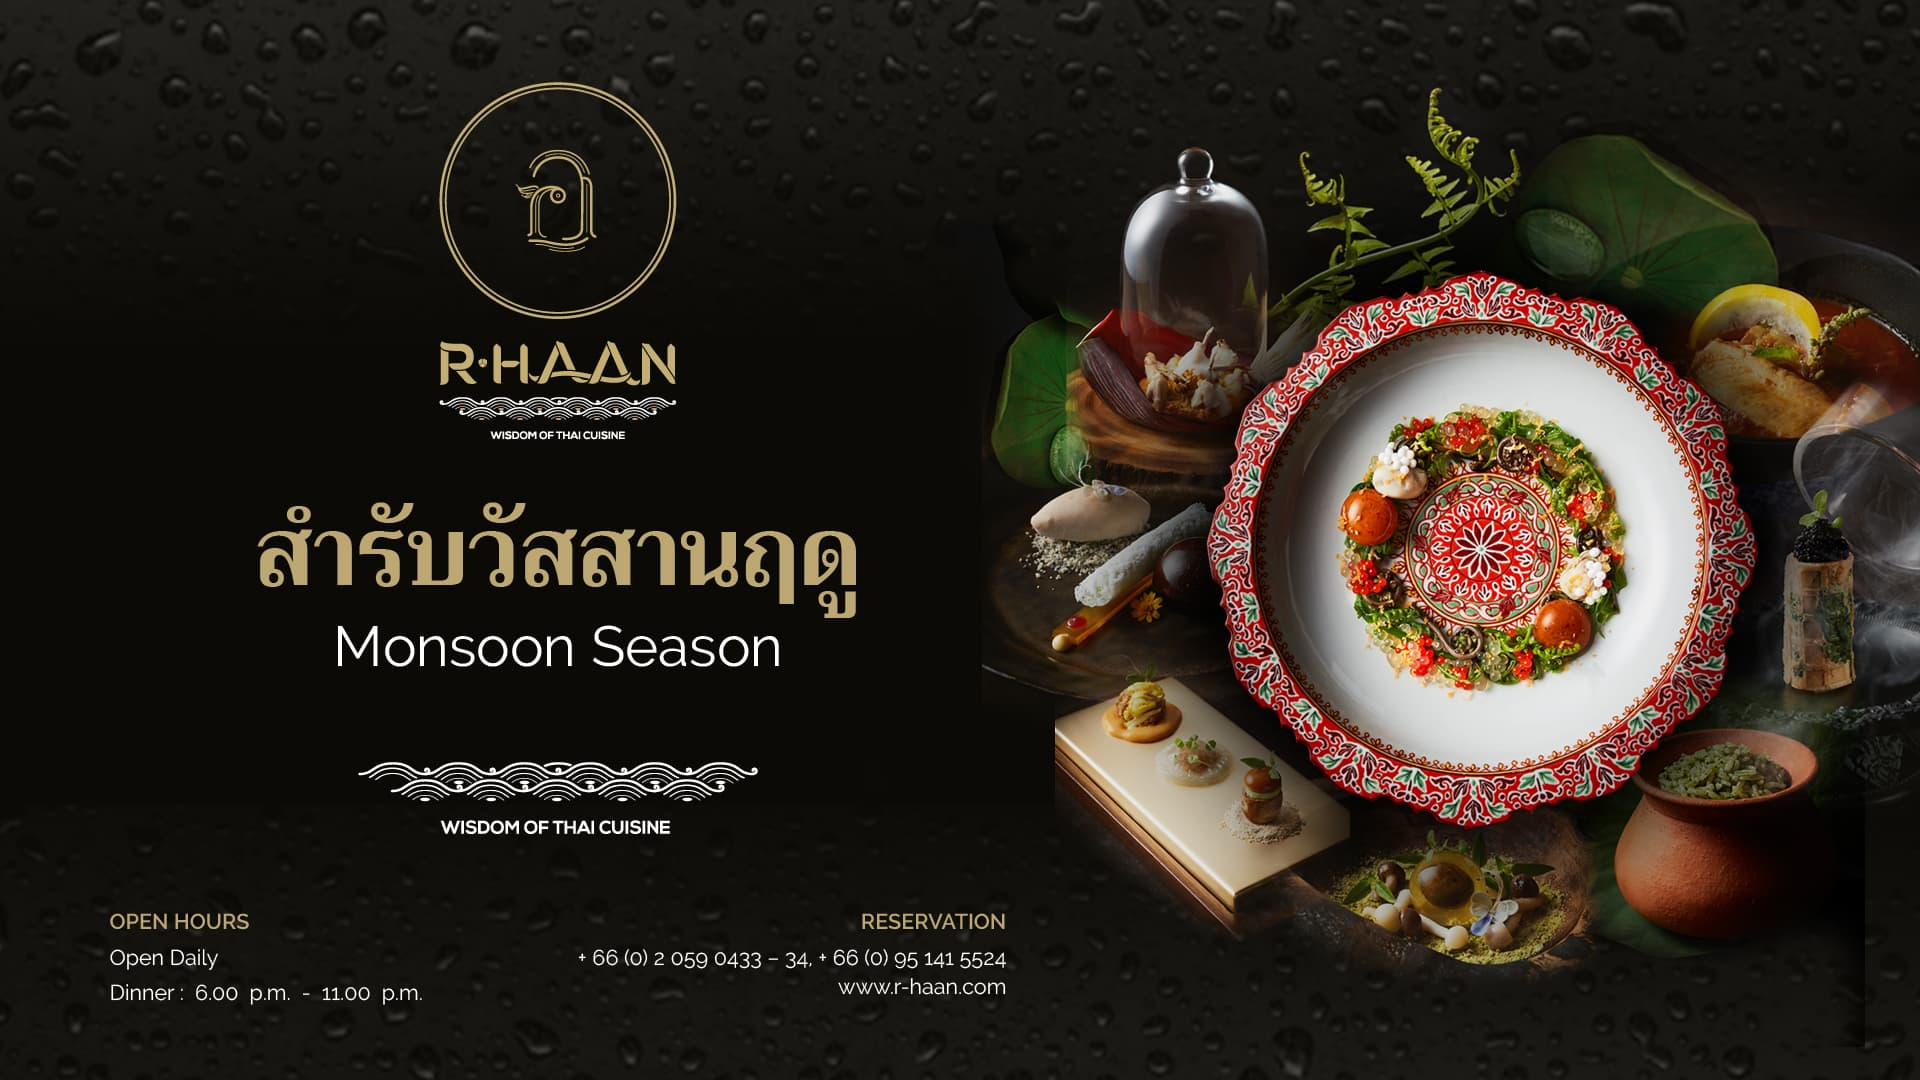 R-HAAN - Welcome to the Unforgettable Royal Monsoon Season